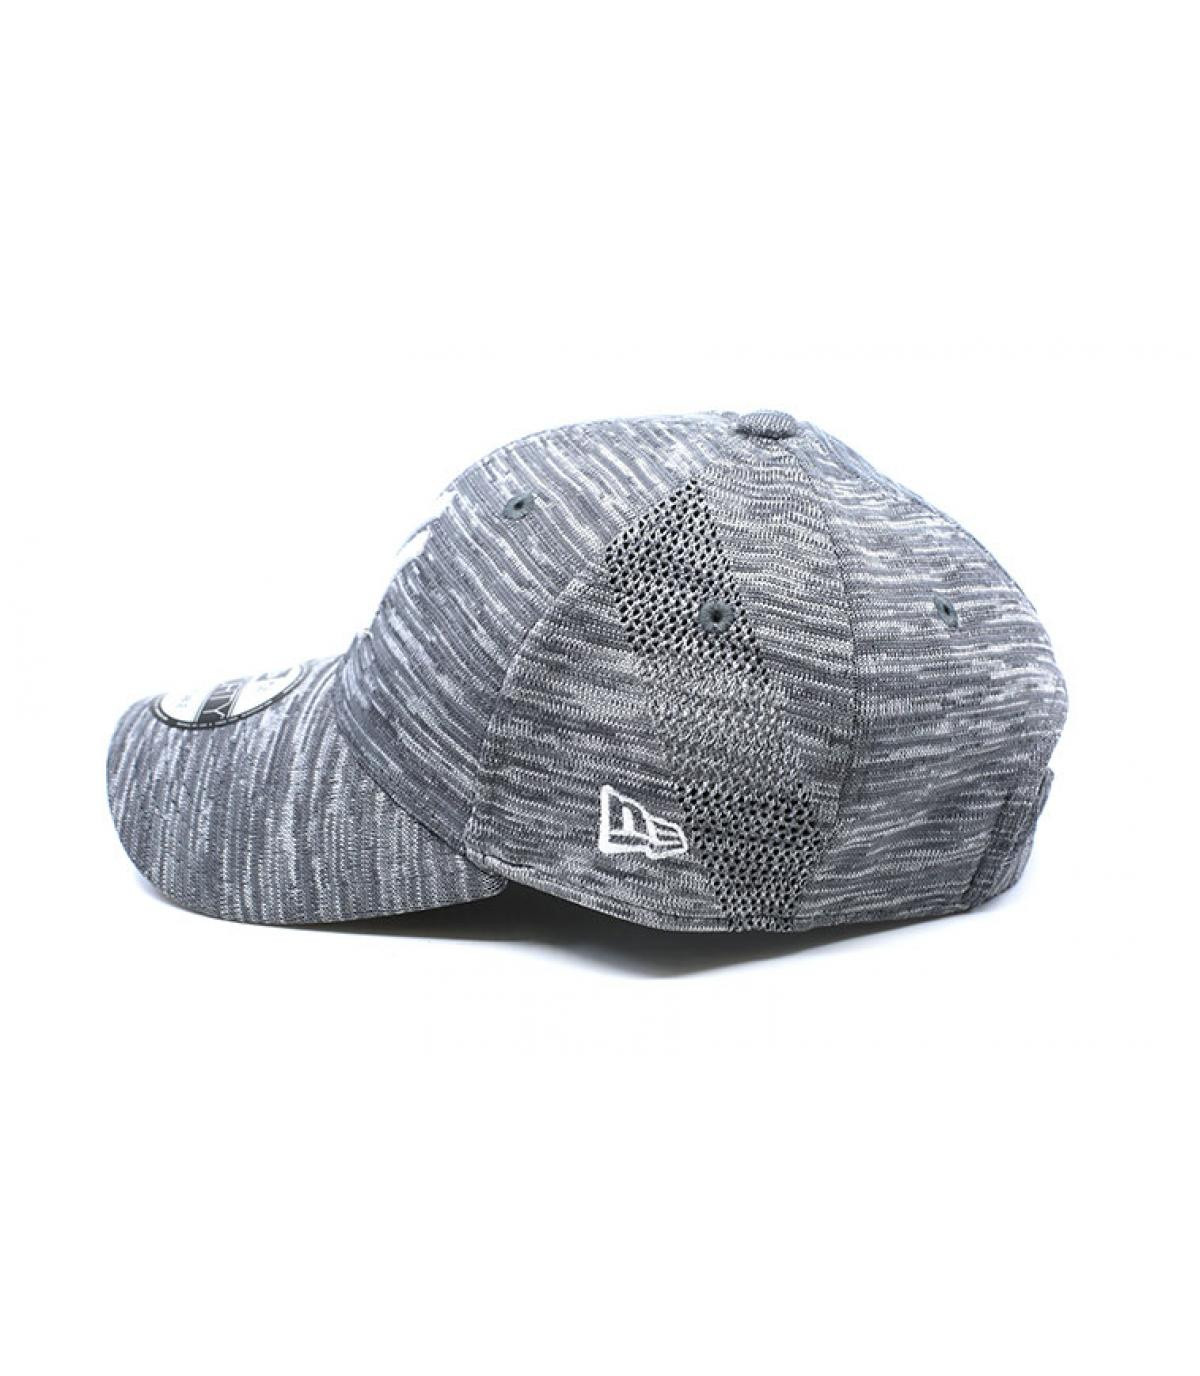 Détails Engineered Fit NY 9Forty graphite - image 4